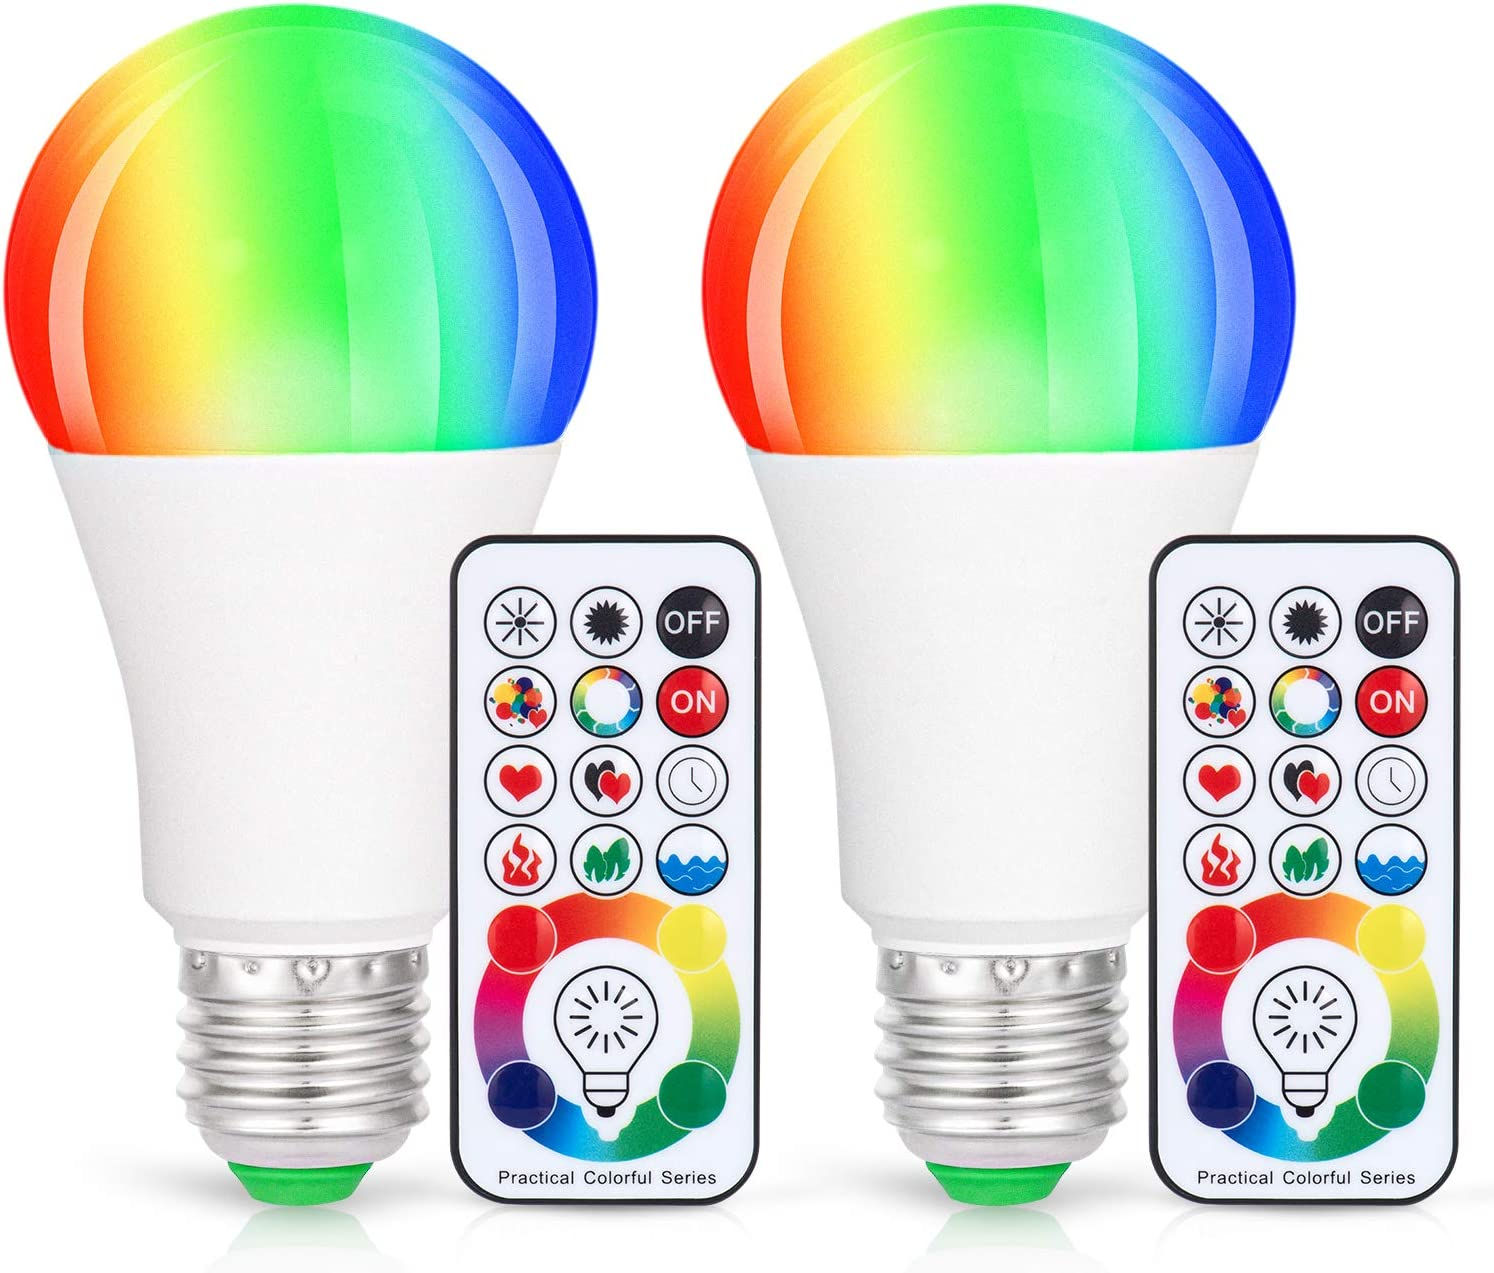 LED Light Bulbs, 2 Pack Dimmable E26 LED Light Bulb, 10W RGBW Color Changing Light Bulb with Remote Control, Decorative Lights, Mood Light Bulb, Great for Home Decor, Stage, Party and More